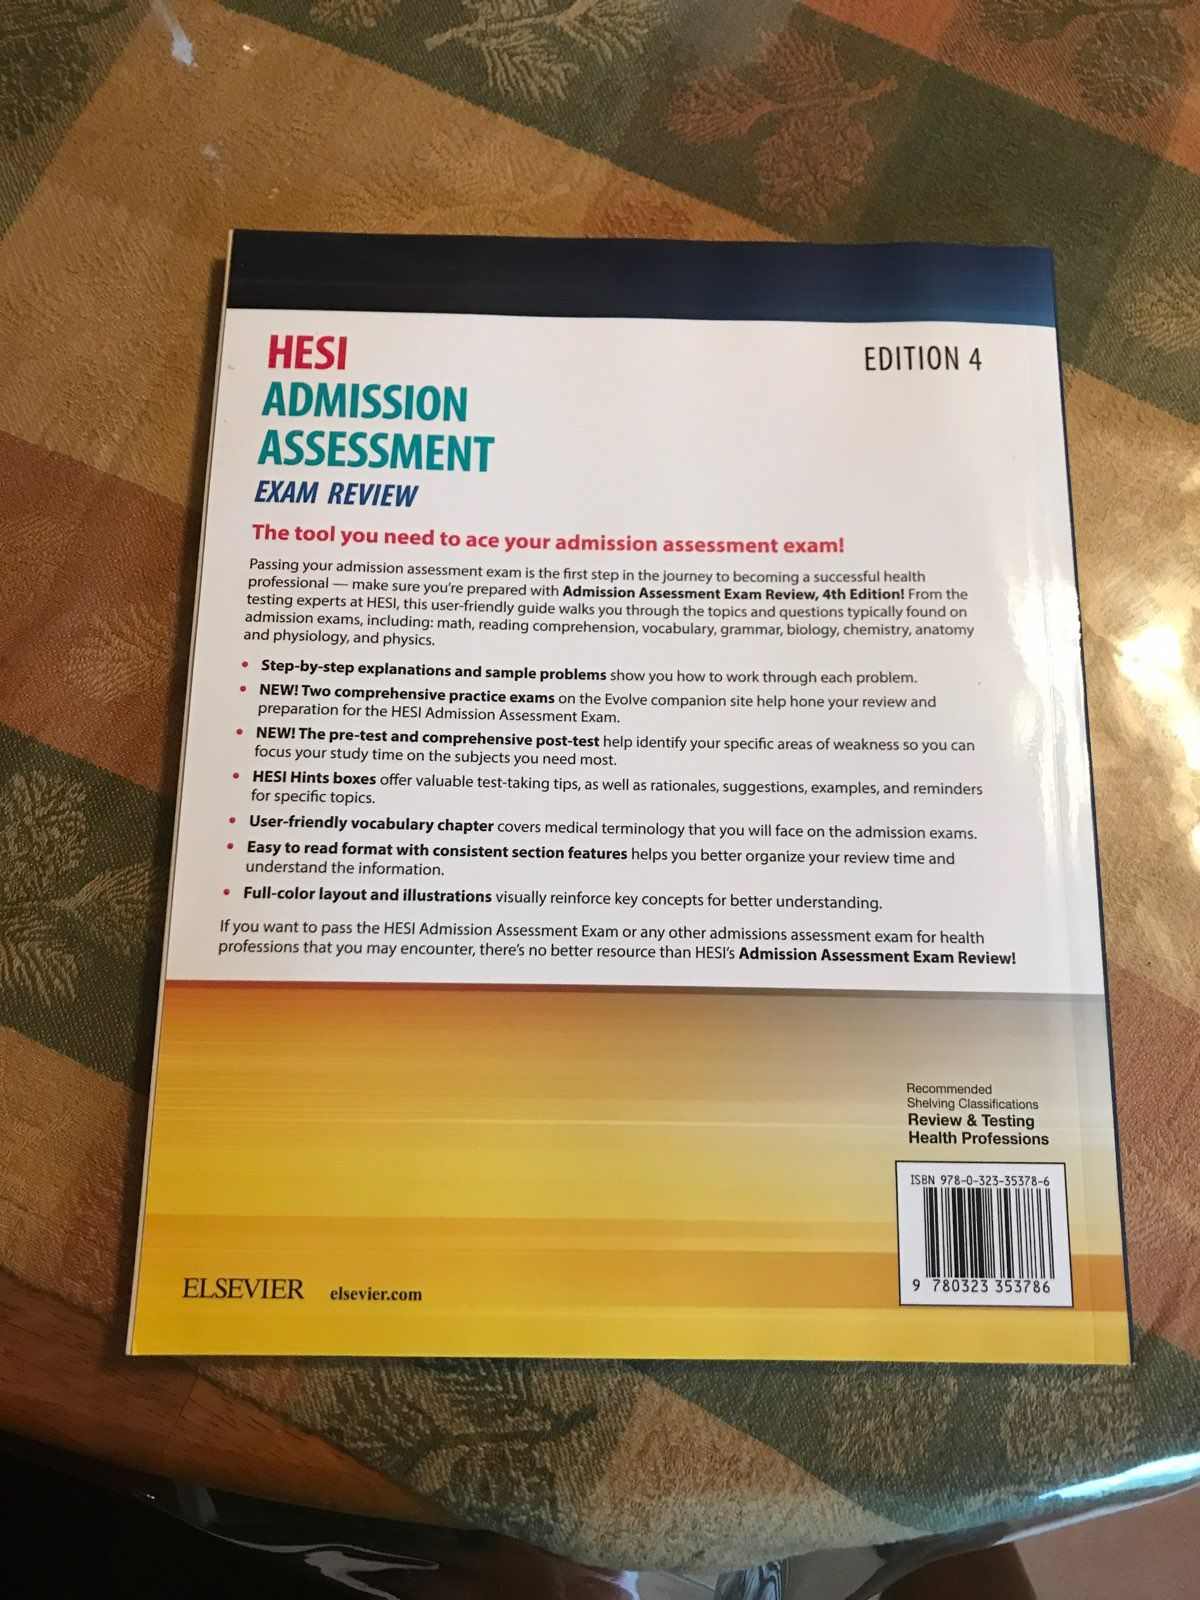 Hesi exam review book